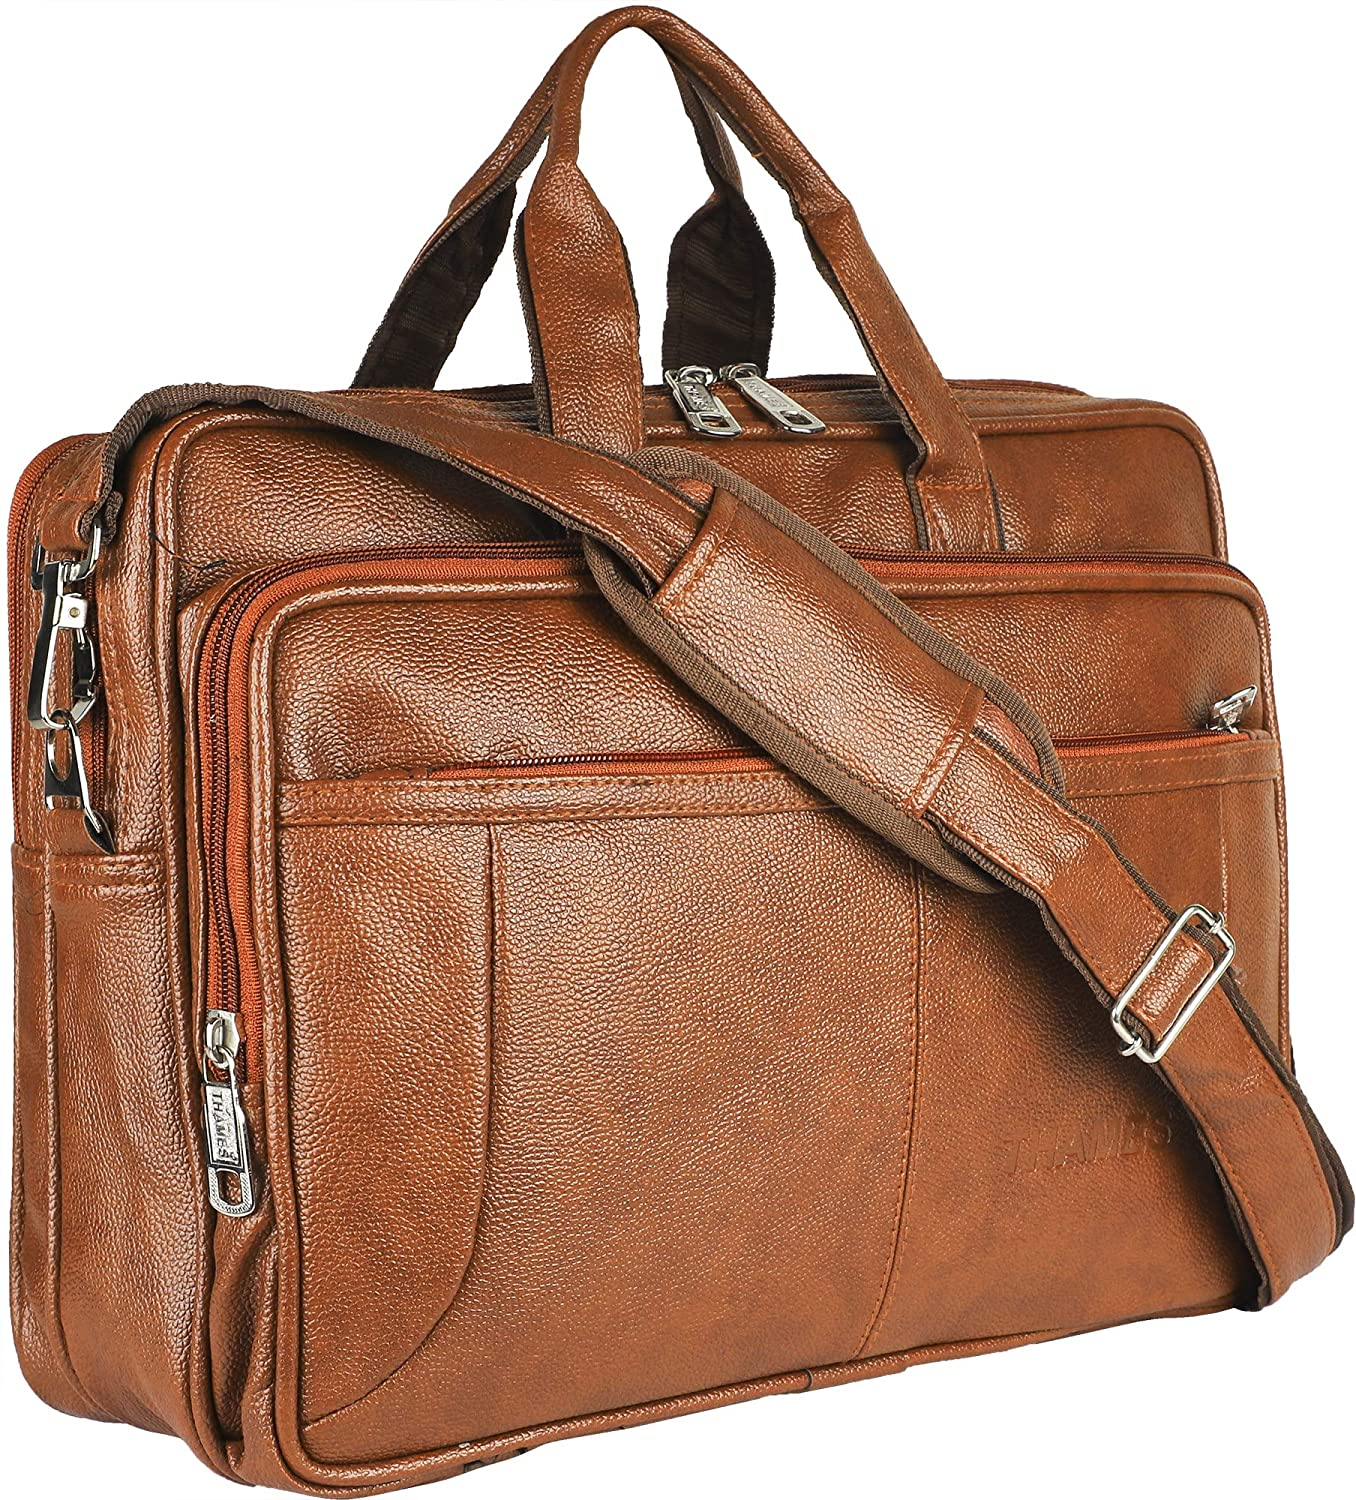 Thames By Lioncrown Faux Leather 15.6 Laptop Messenger